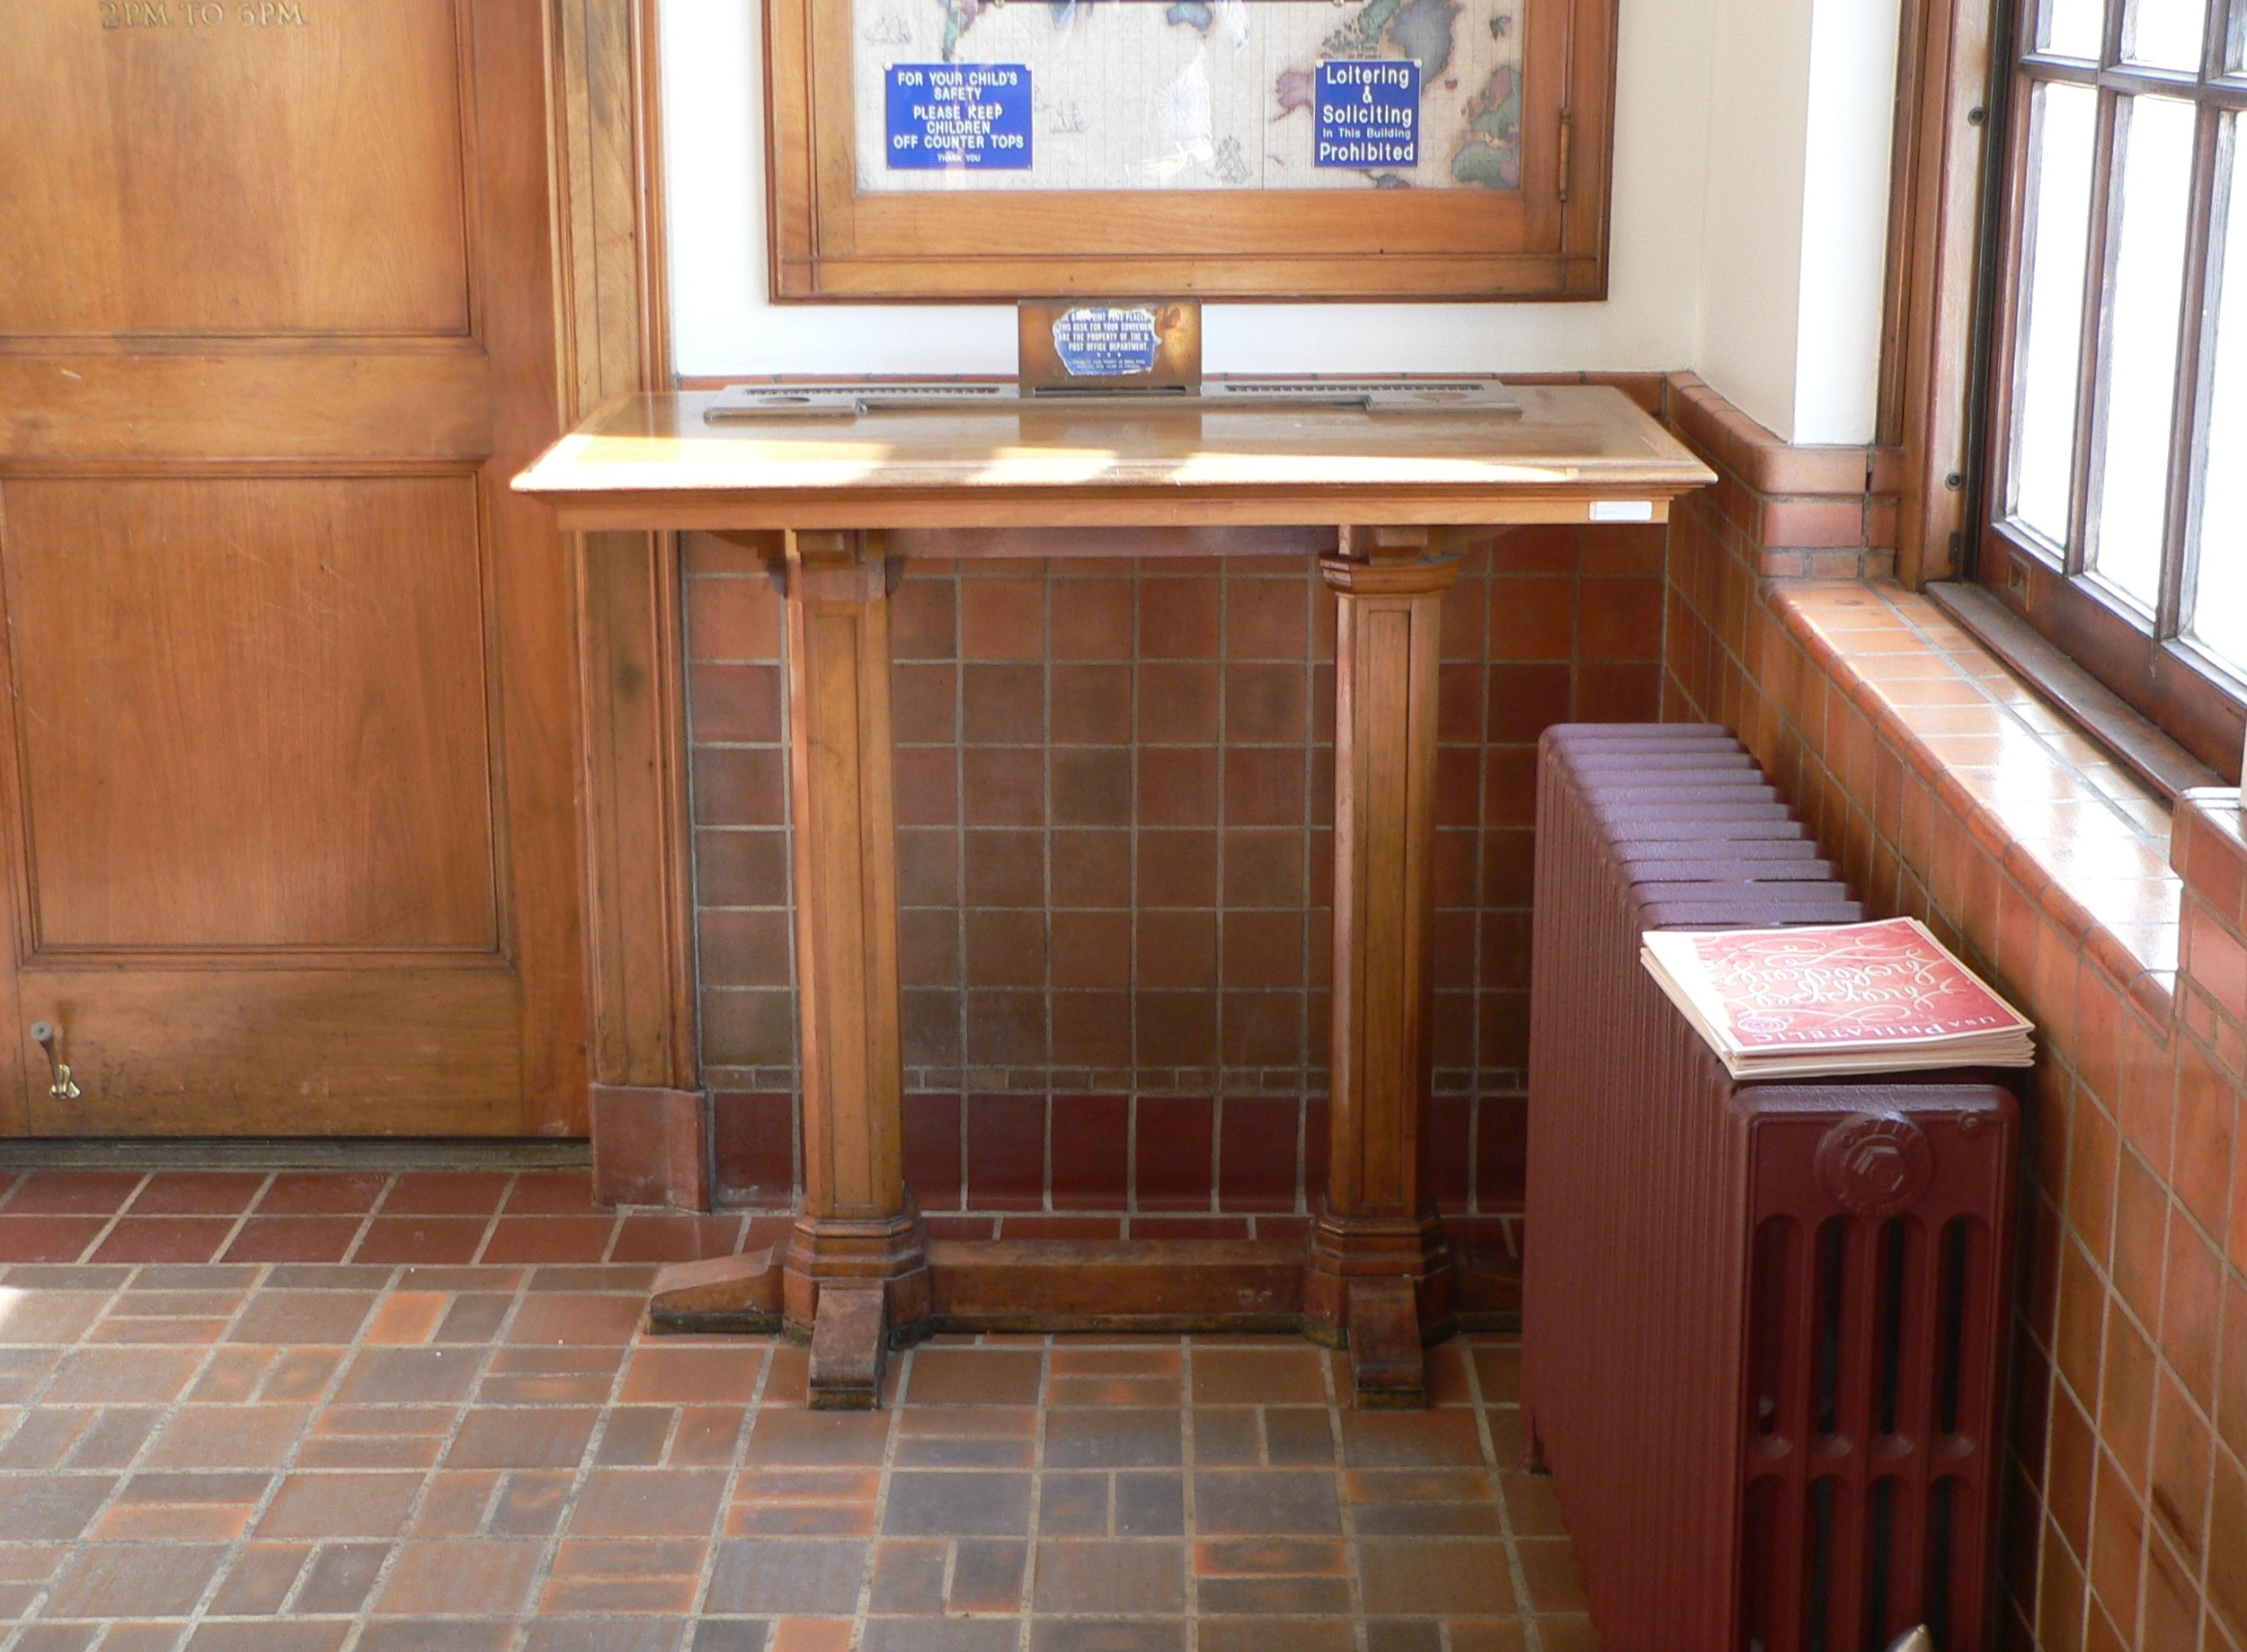 File Albion Post Office Interior Table 1 Jpg Wikimedia Commons